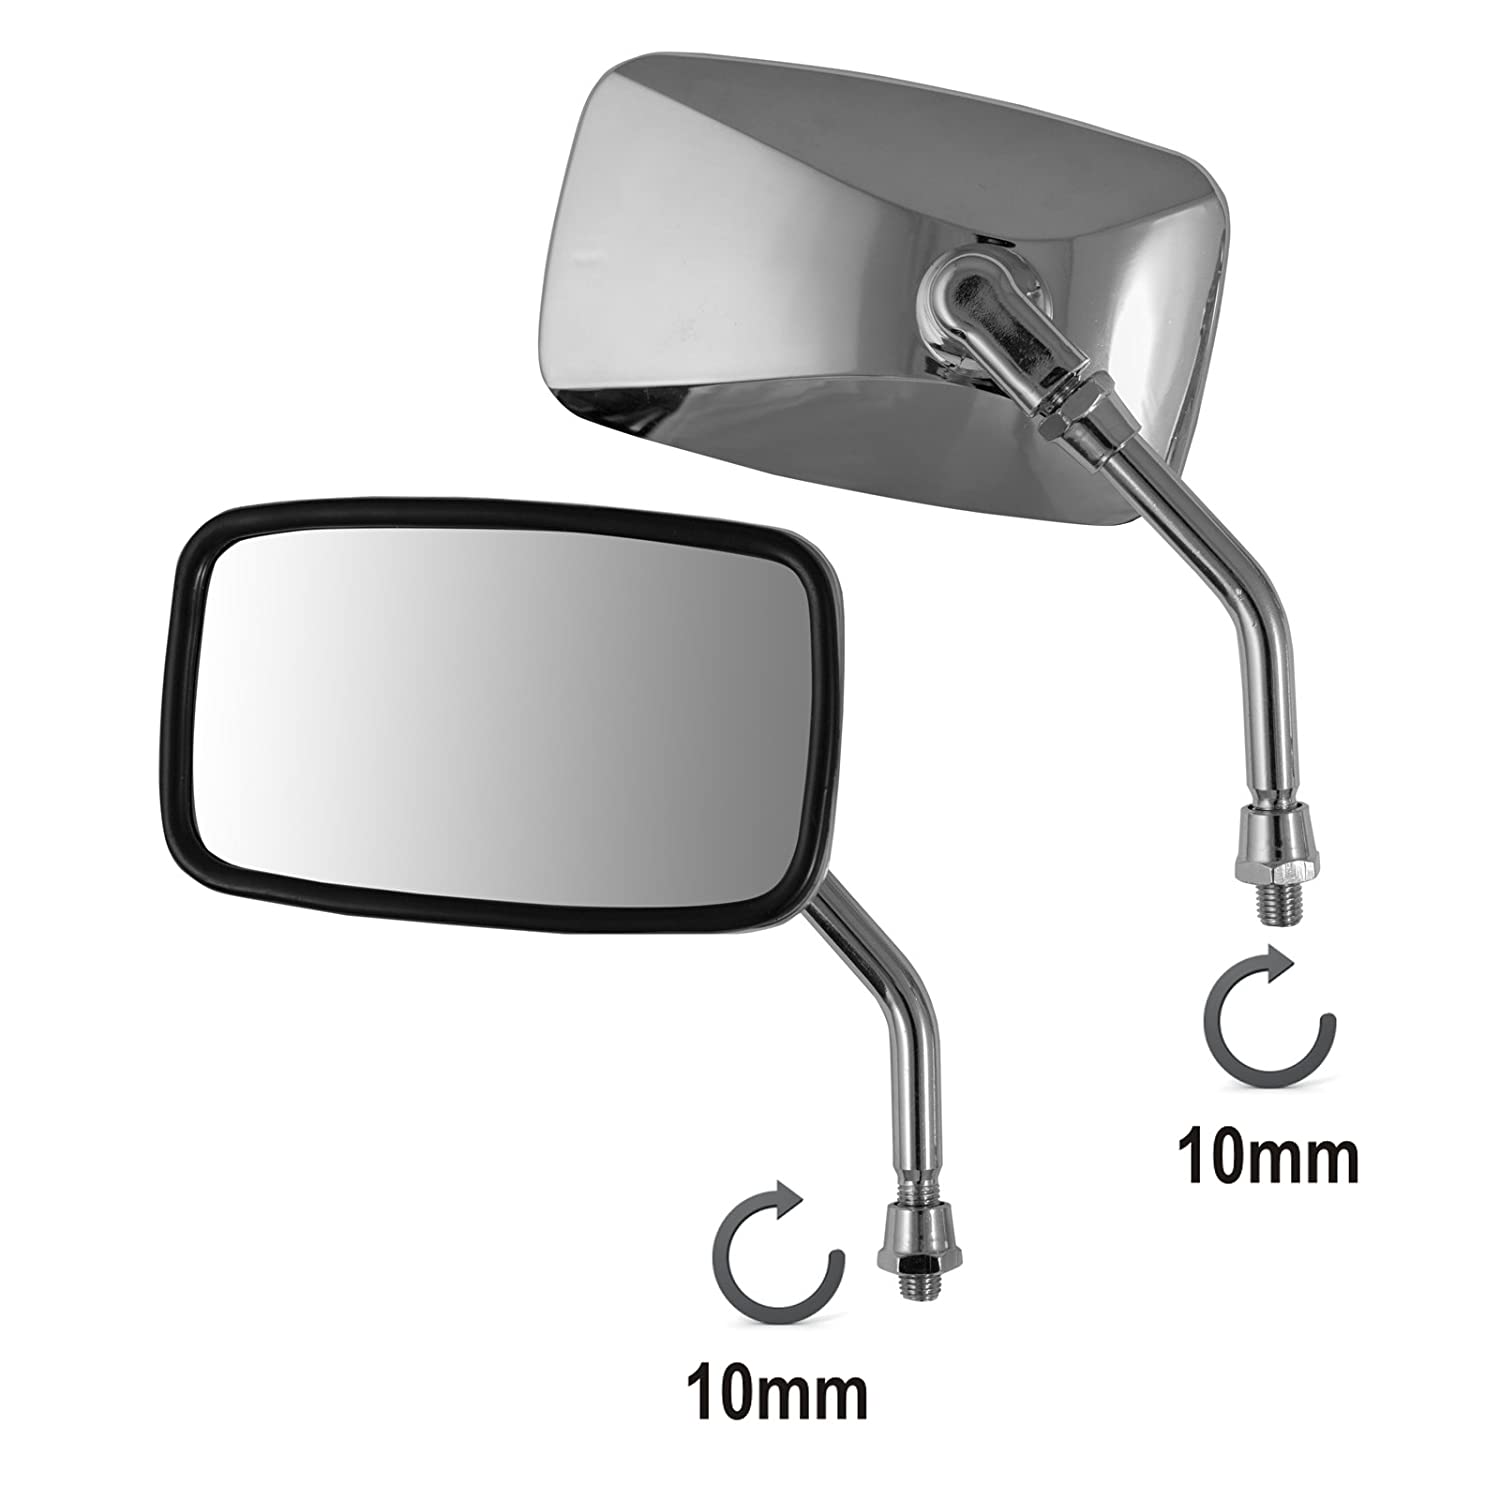 A Mirrors Rearview Pro universale per motorino scooter Motorcycle Motorbike Chrome M10 A-Pro 5180000079840